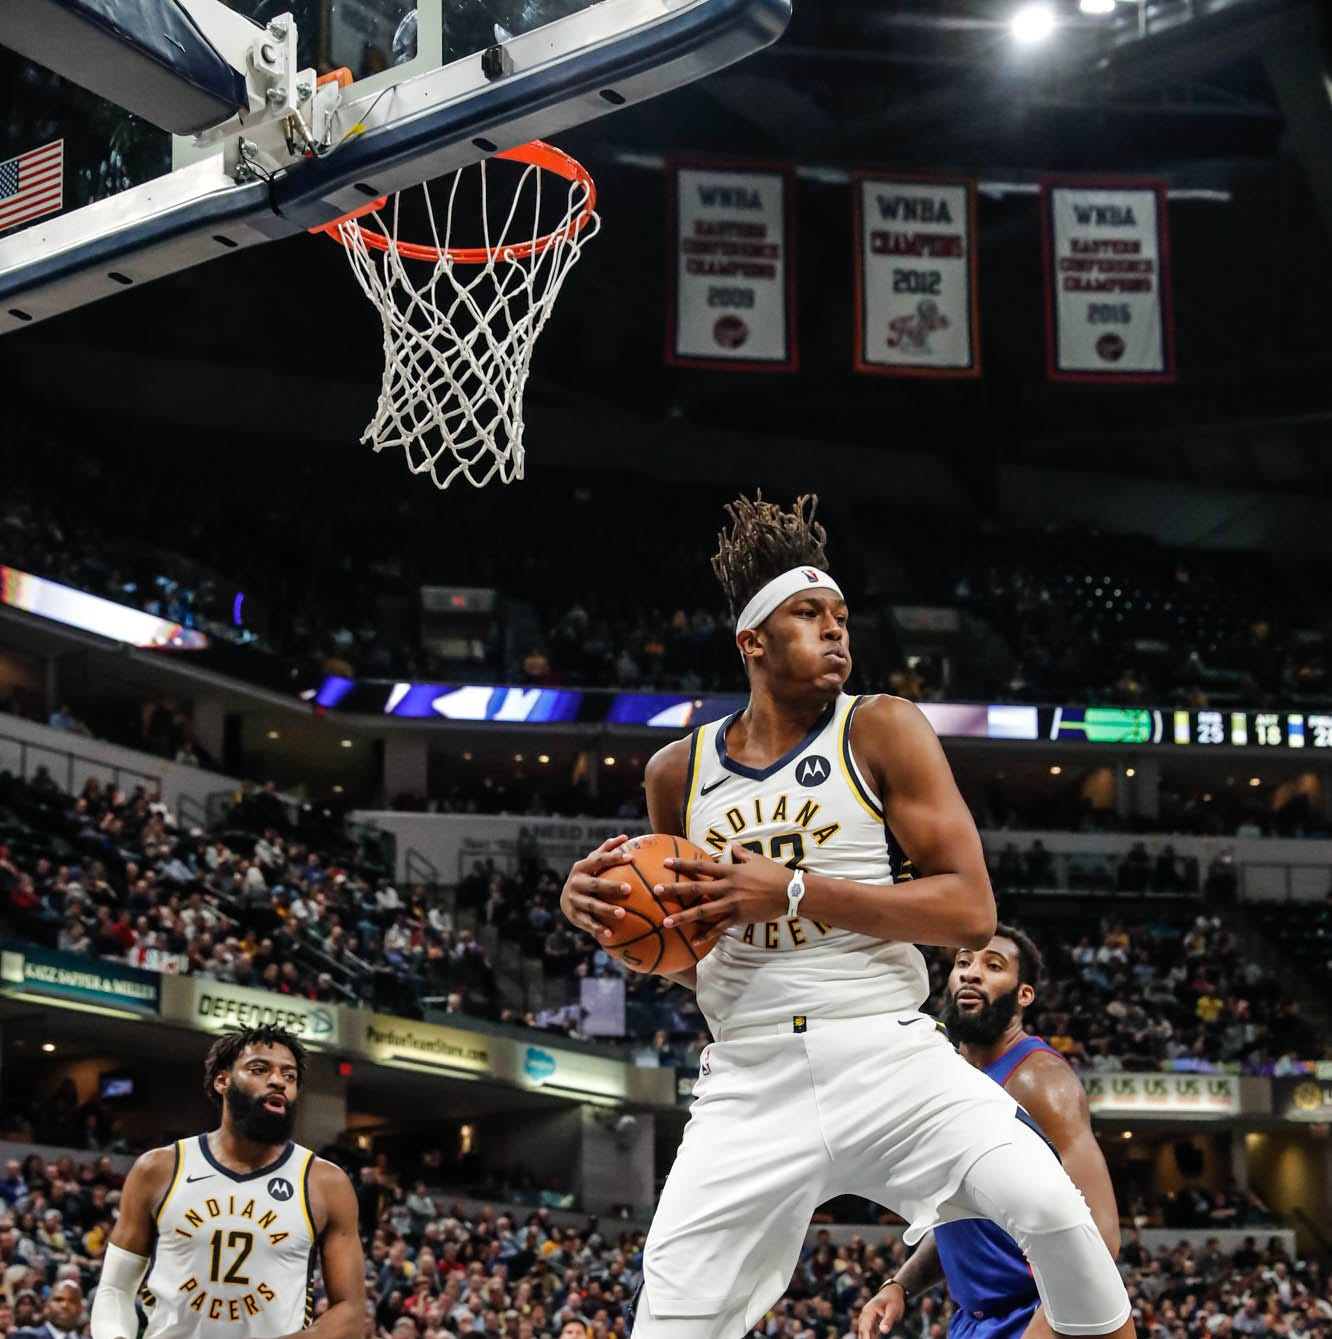 Once held back by 'soft' label and resentment, Myles Turner's focus is clear for playoffs